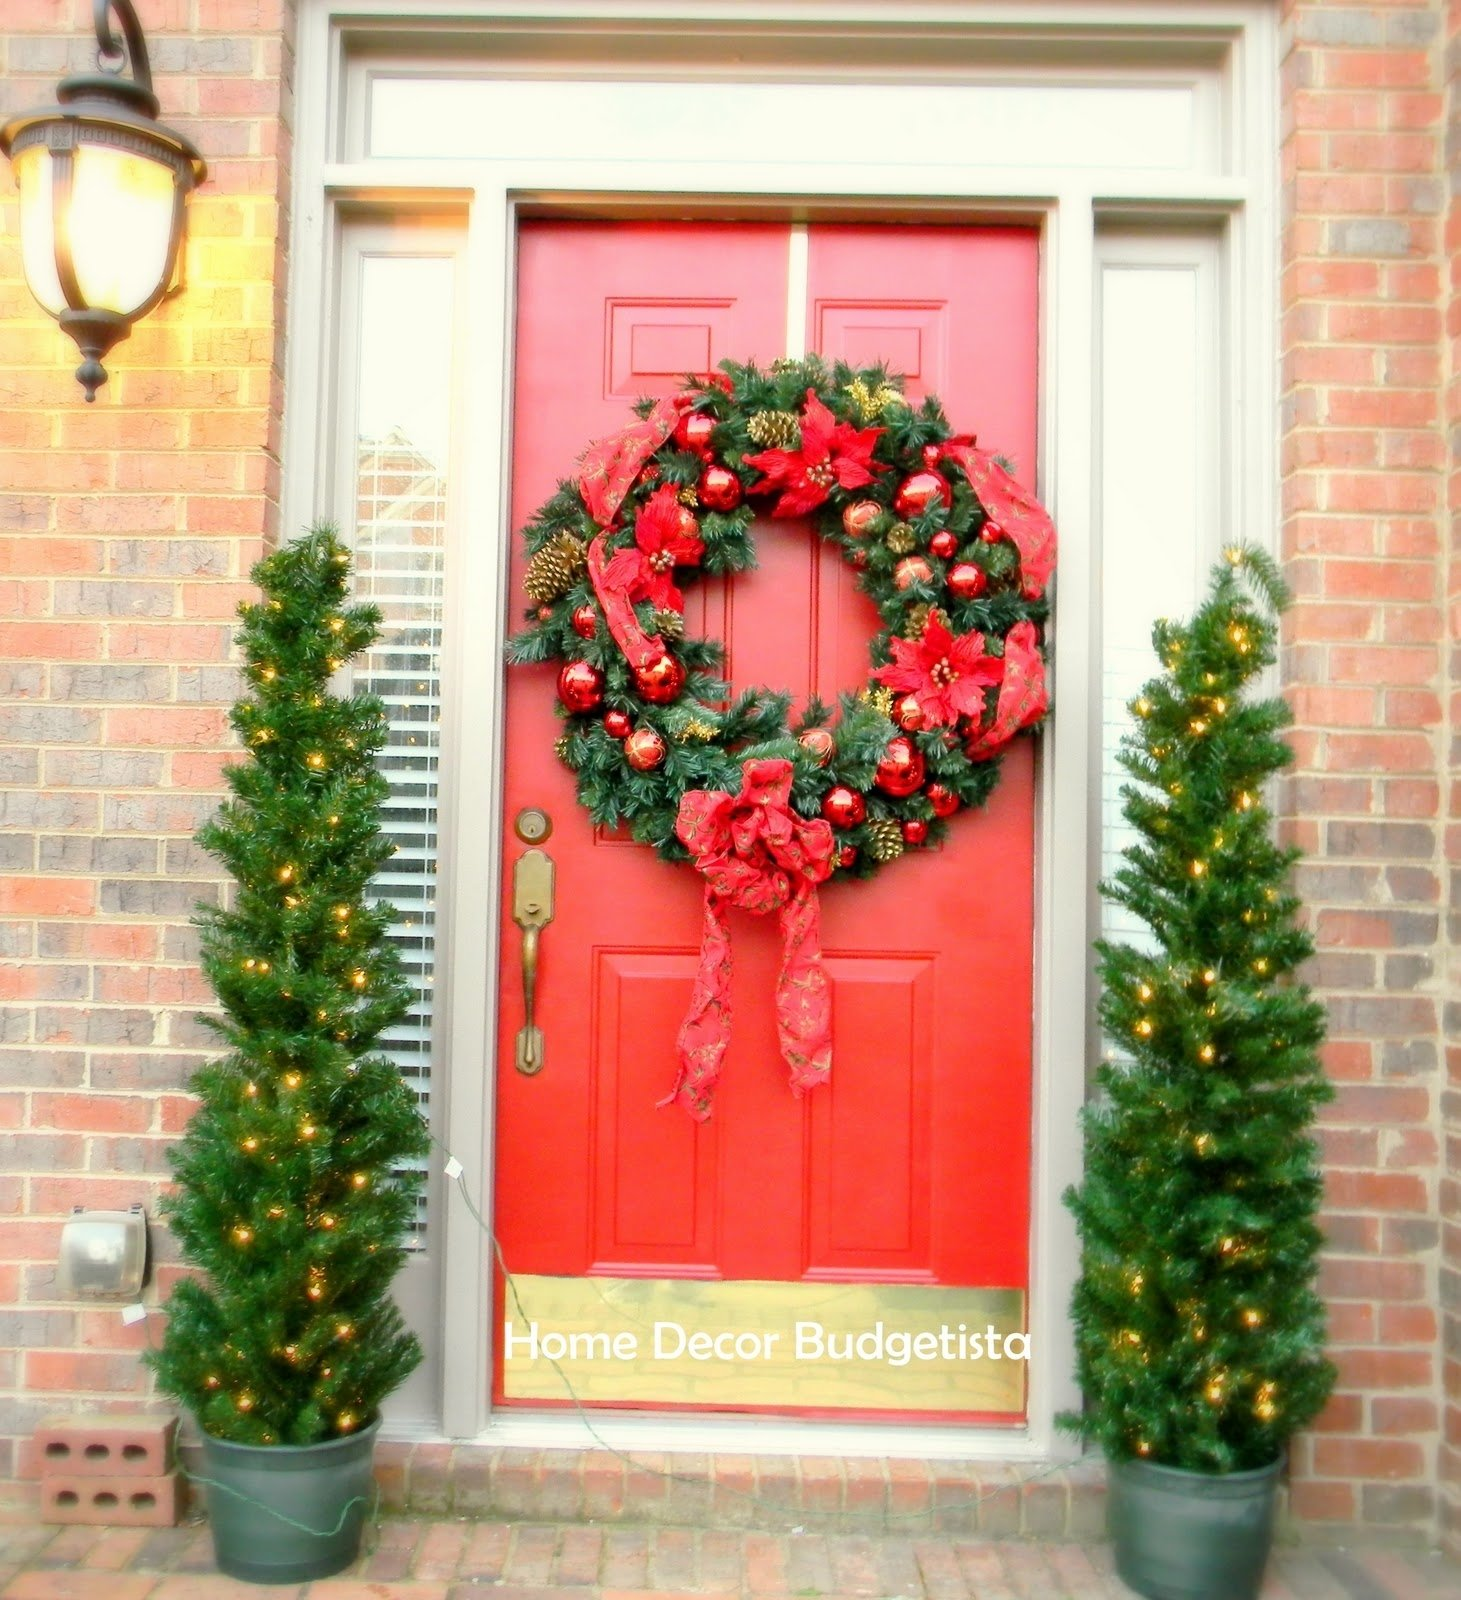 10 Awesome Front Door Christmas Decorating Ideas backyards best christmas door decorations for jumbo wreath front 2020